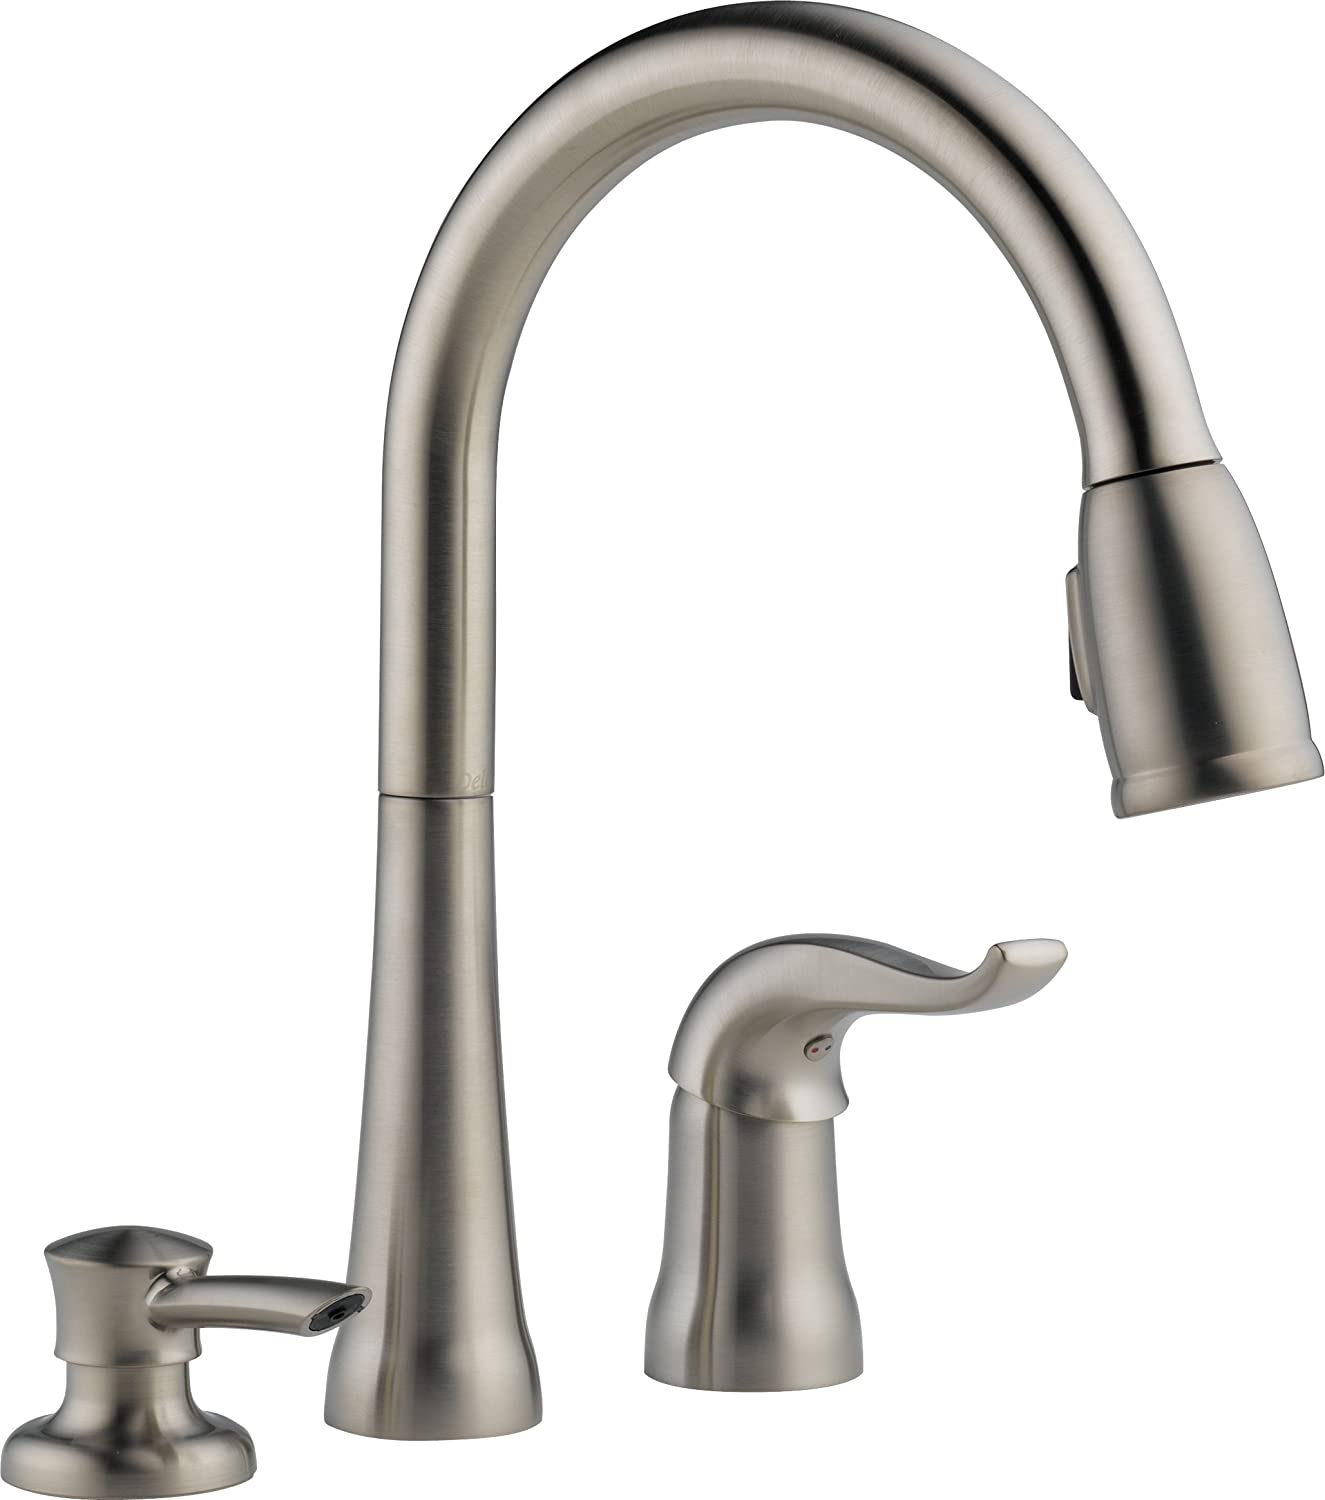 Faucet Kitchen : ... Down Kitchen Faucet With Magnetic Sprayer Dock Best Kitchen Faucets